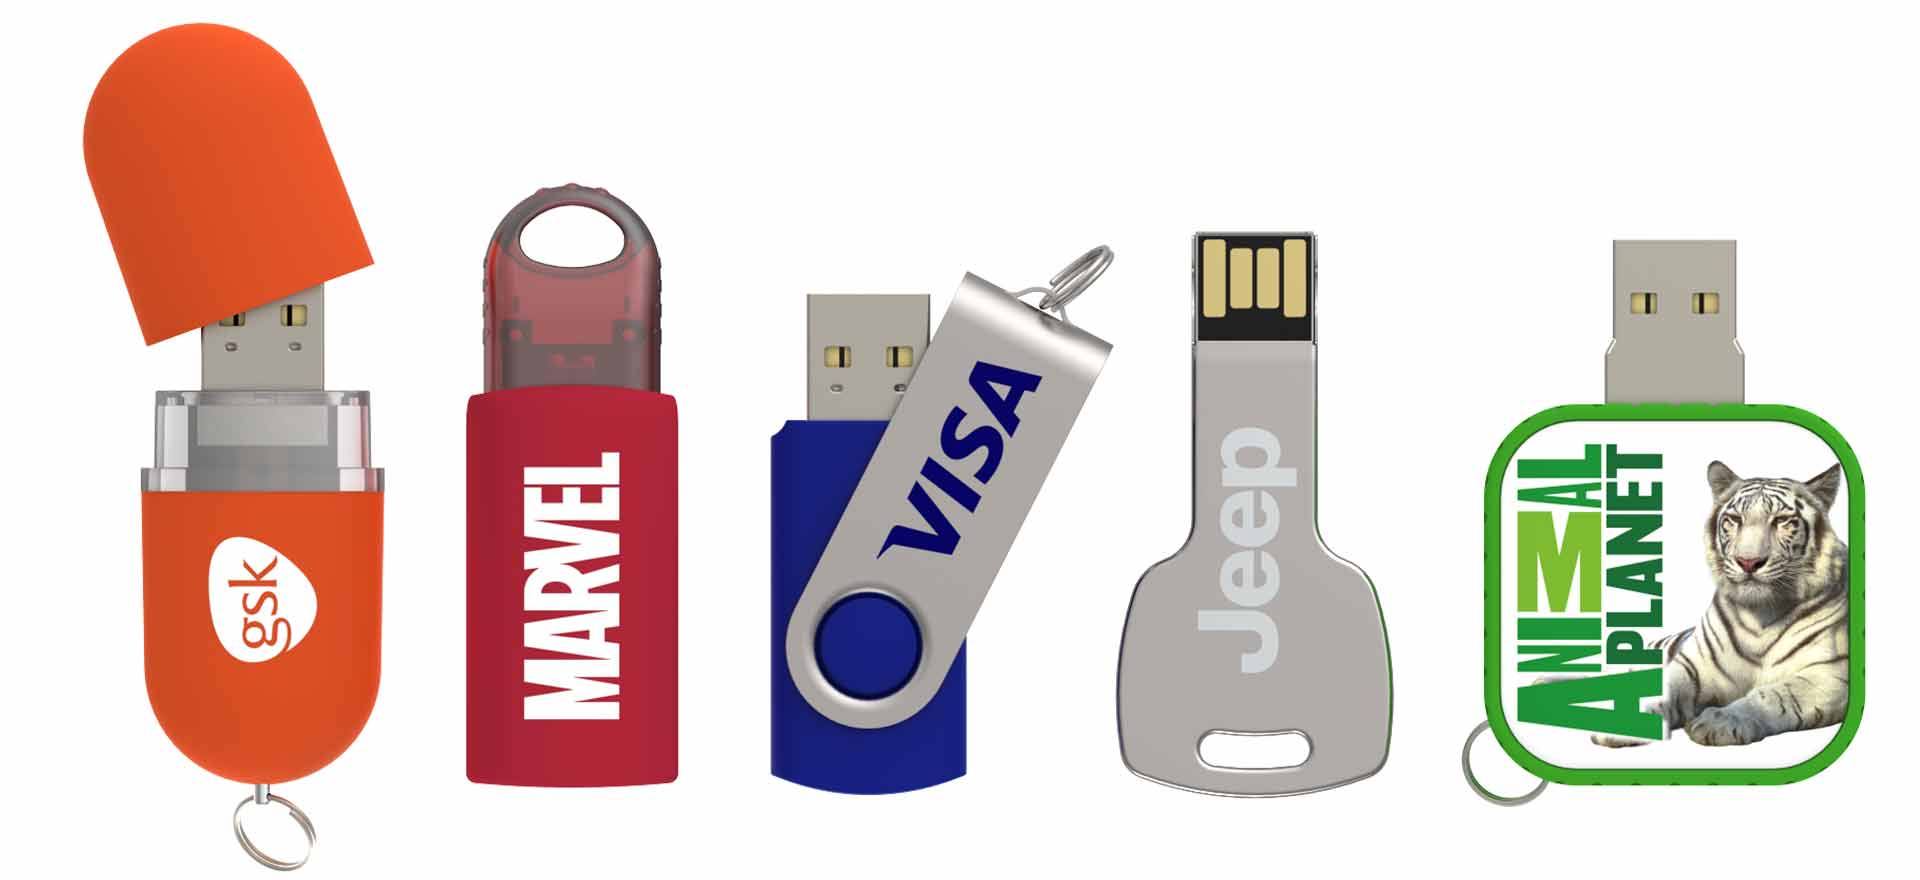 USB Sticks in 5 Days!